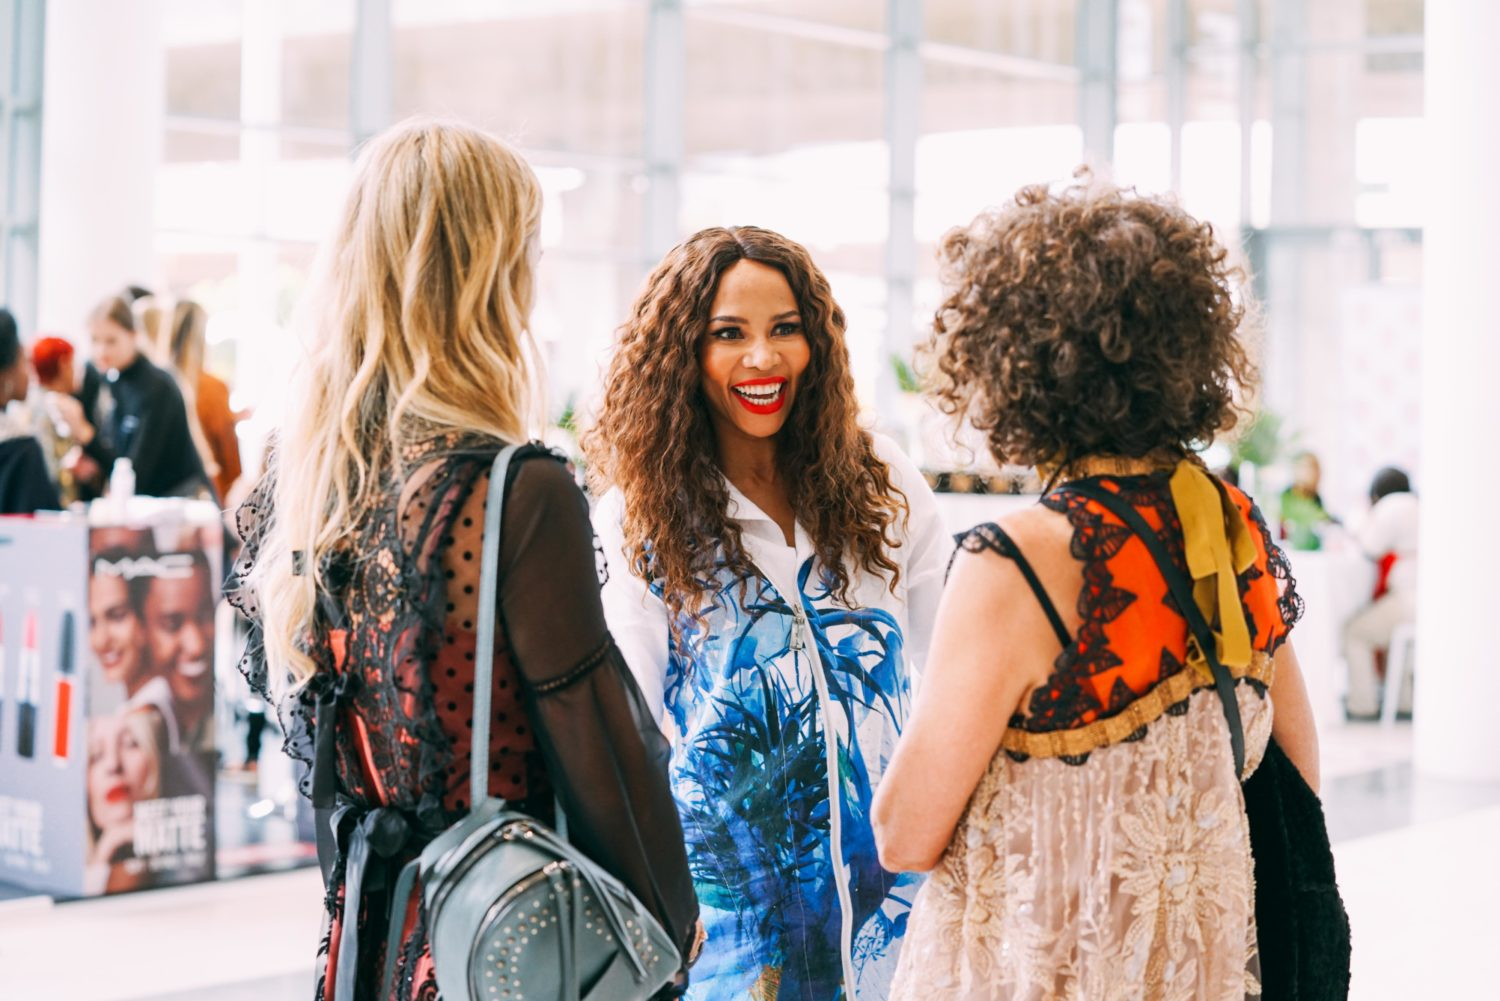 It's Official: These Were the Most Killer Street Style & Front Row Looks From #AFICTFW19